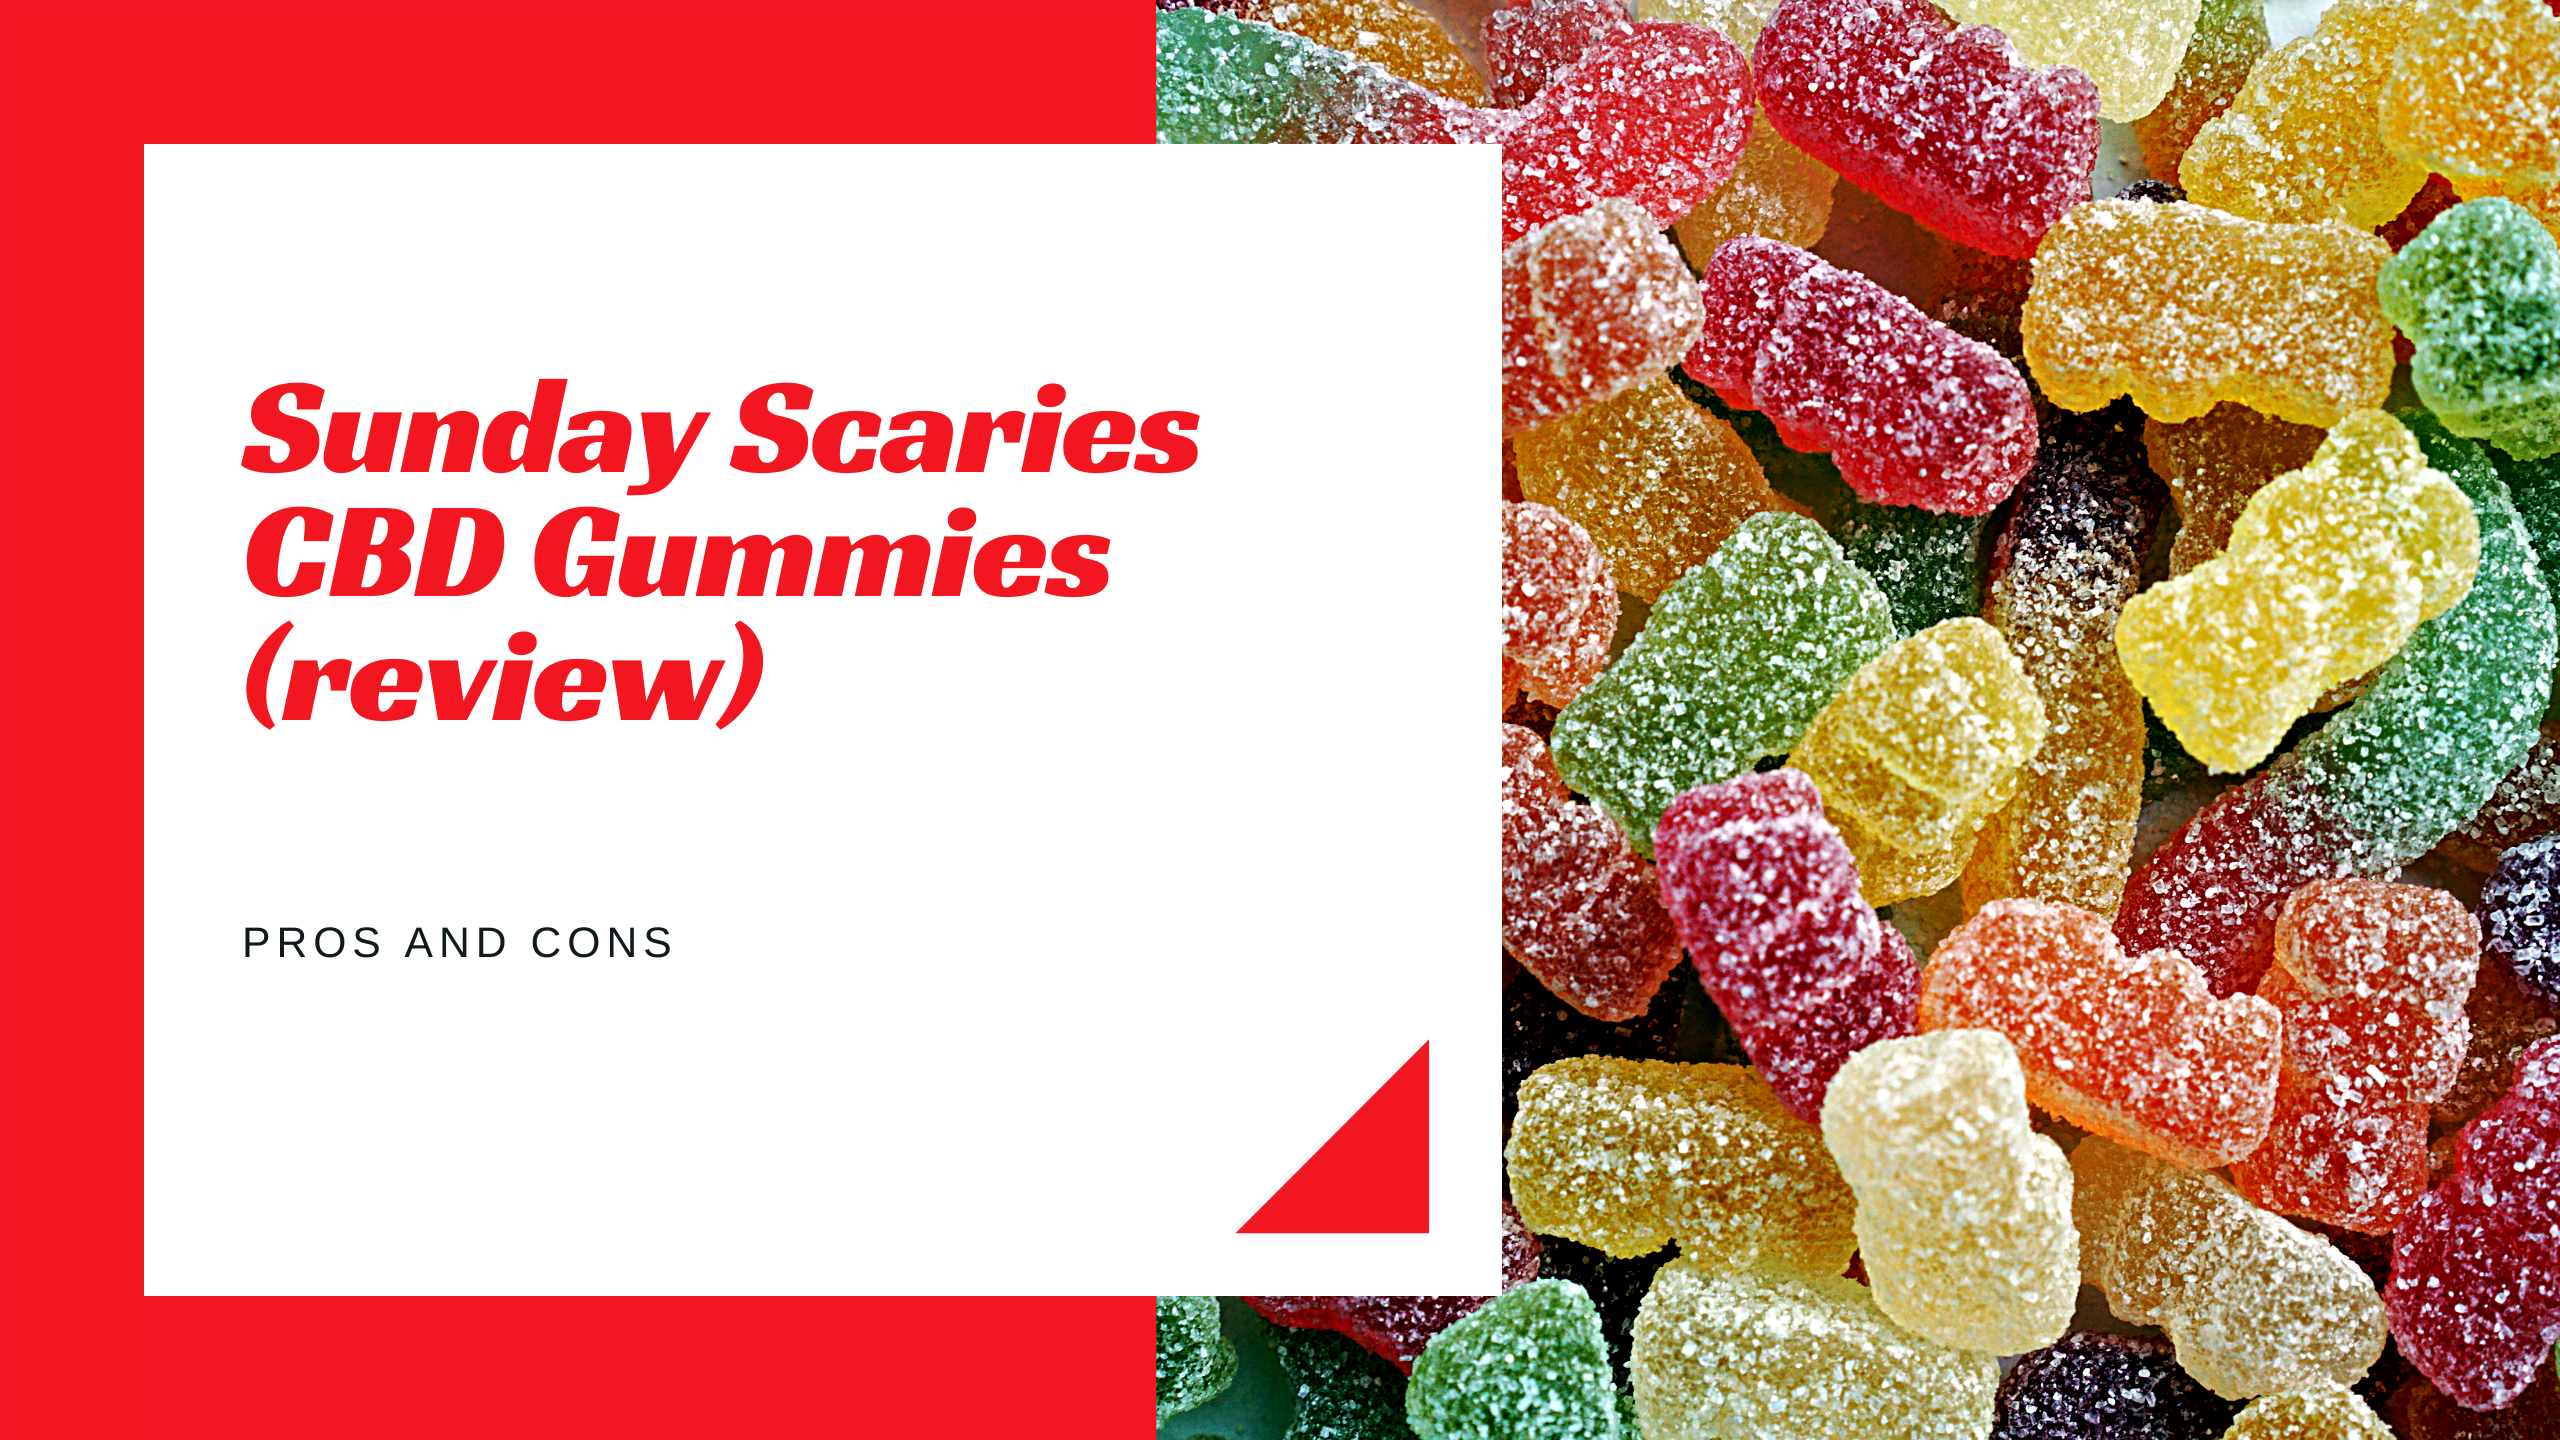 Sunday Scaries CBD Gummies (review) – pros and cons